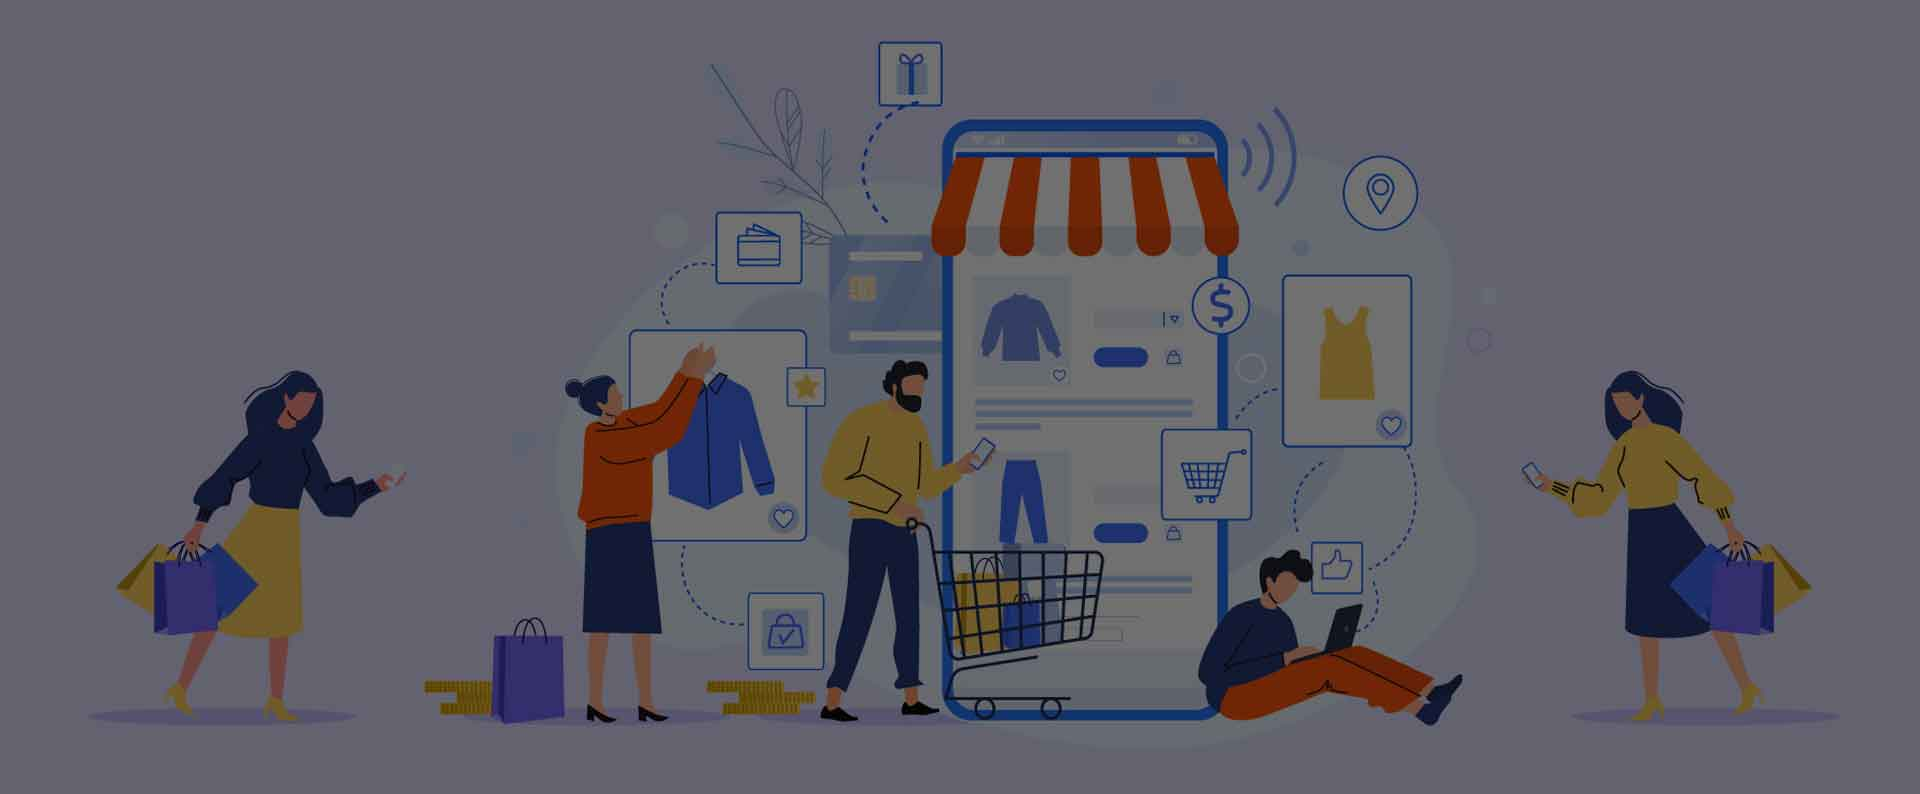 What are the Ecommerce Business Challenges that a Startup Face in 2022